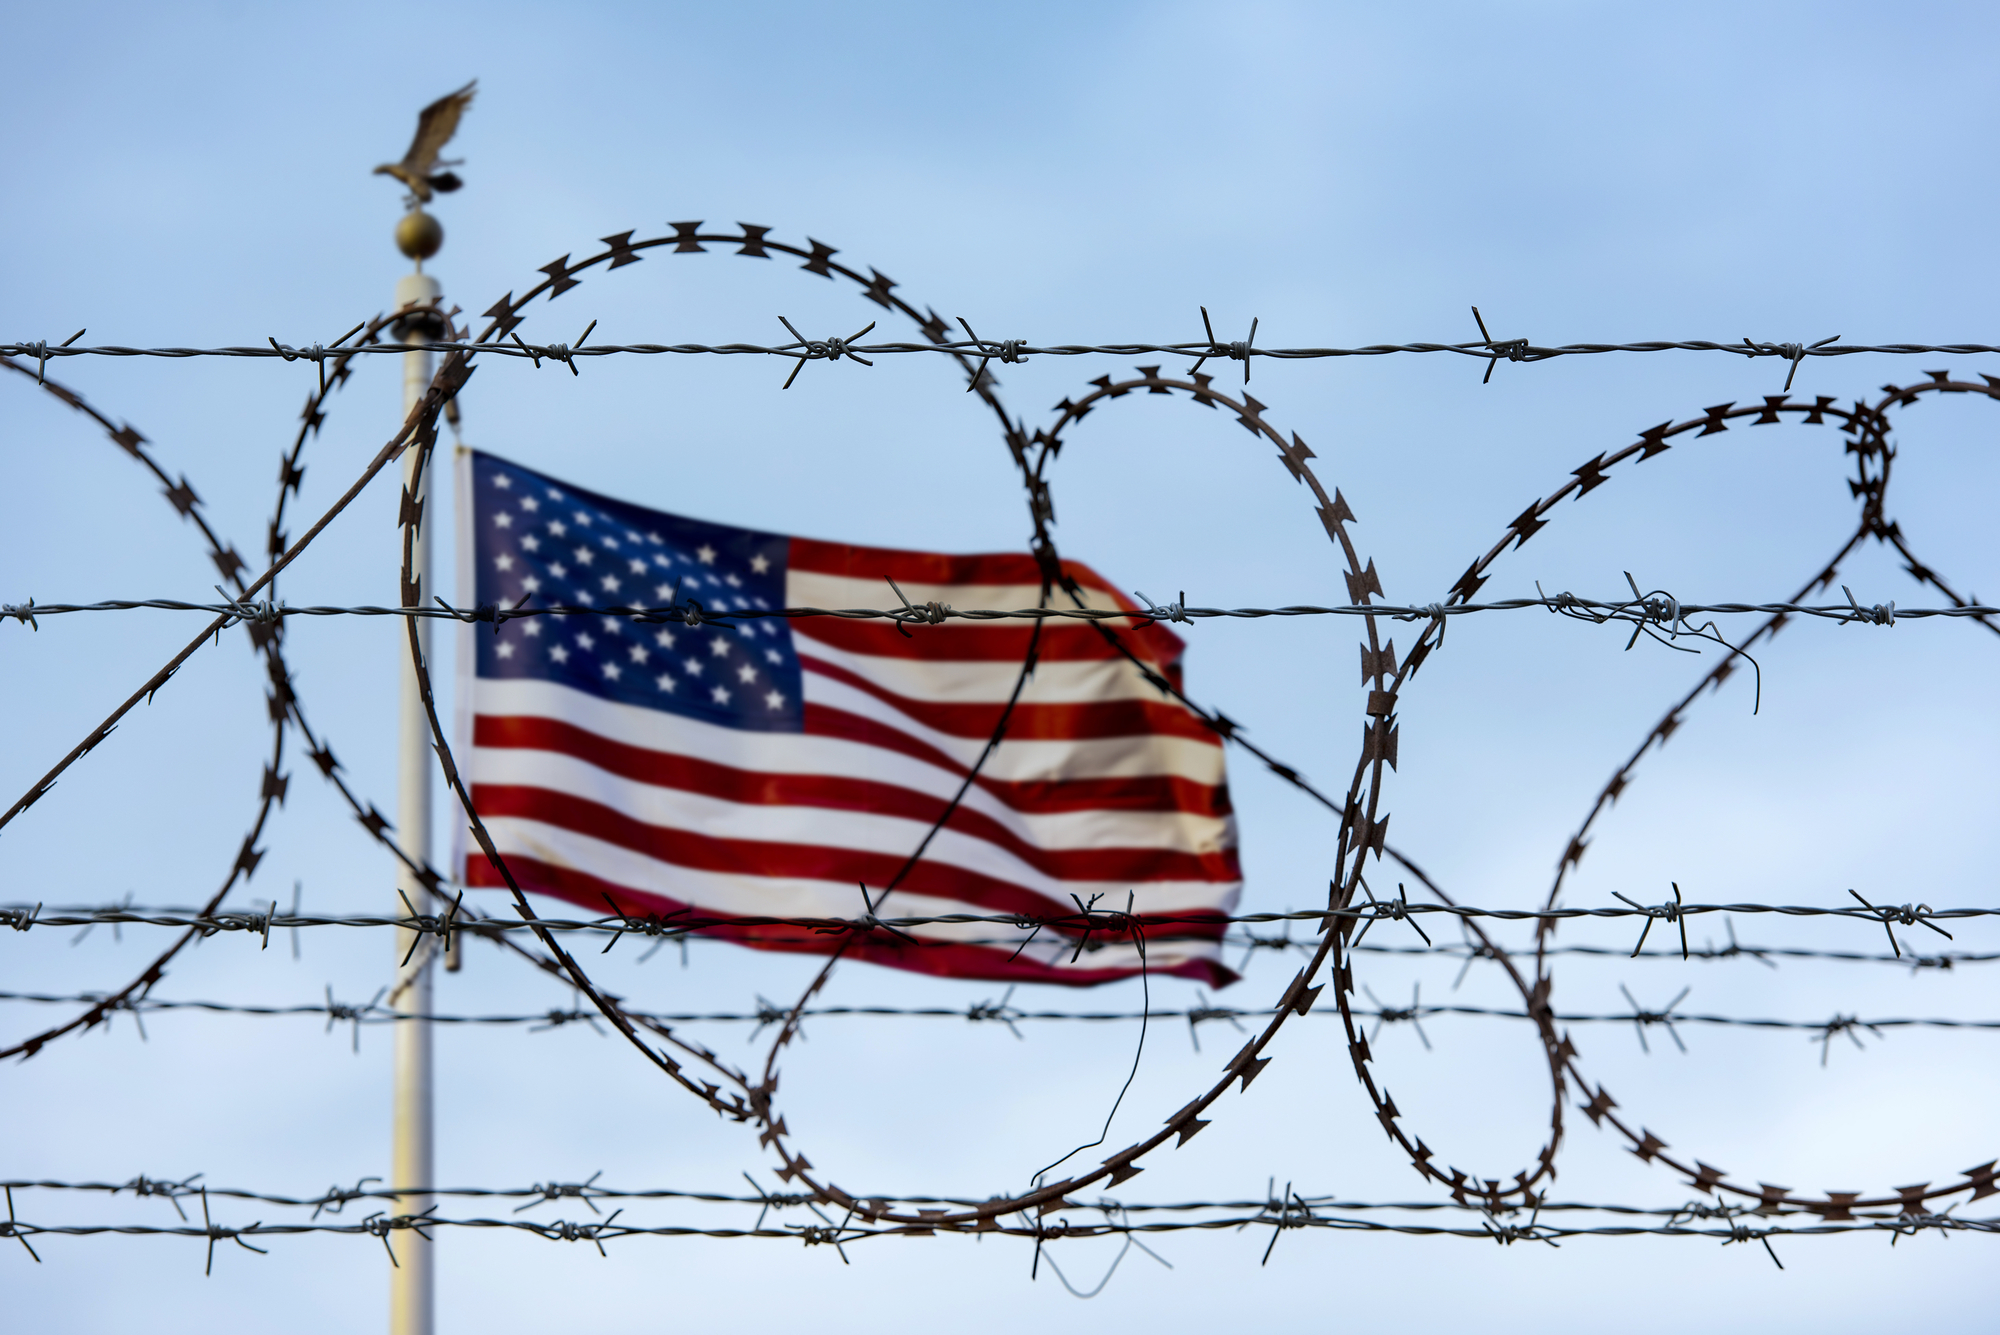 barbed wire in front of a U.S. flag